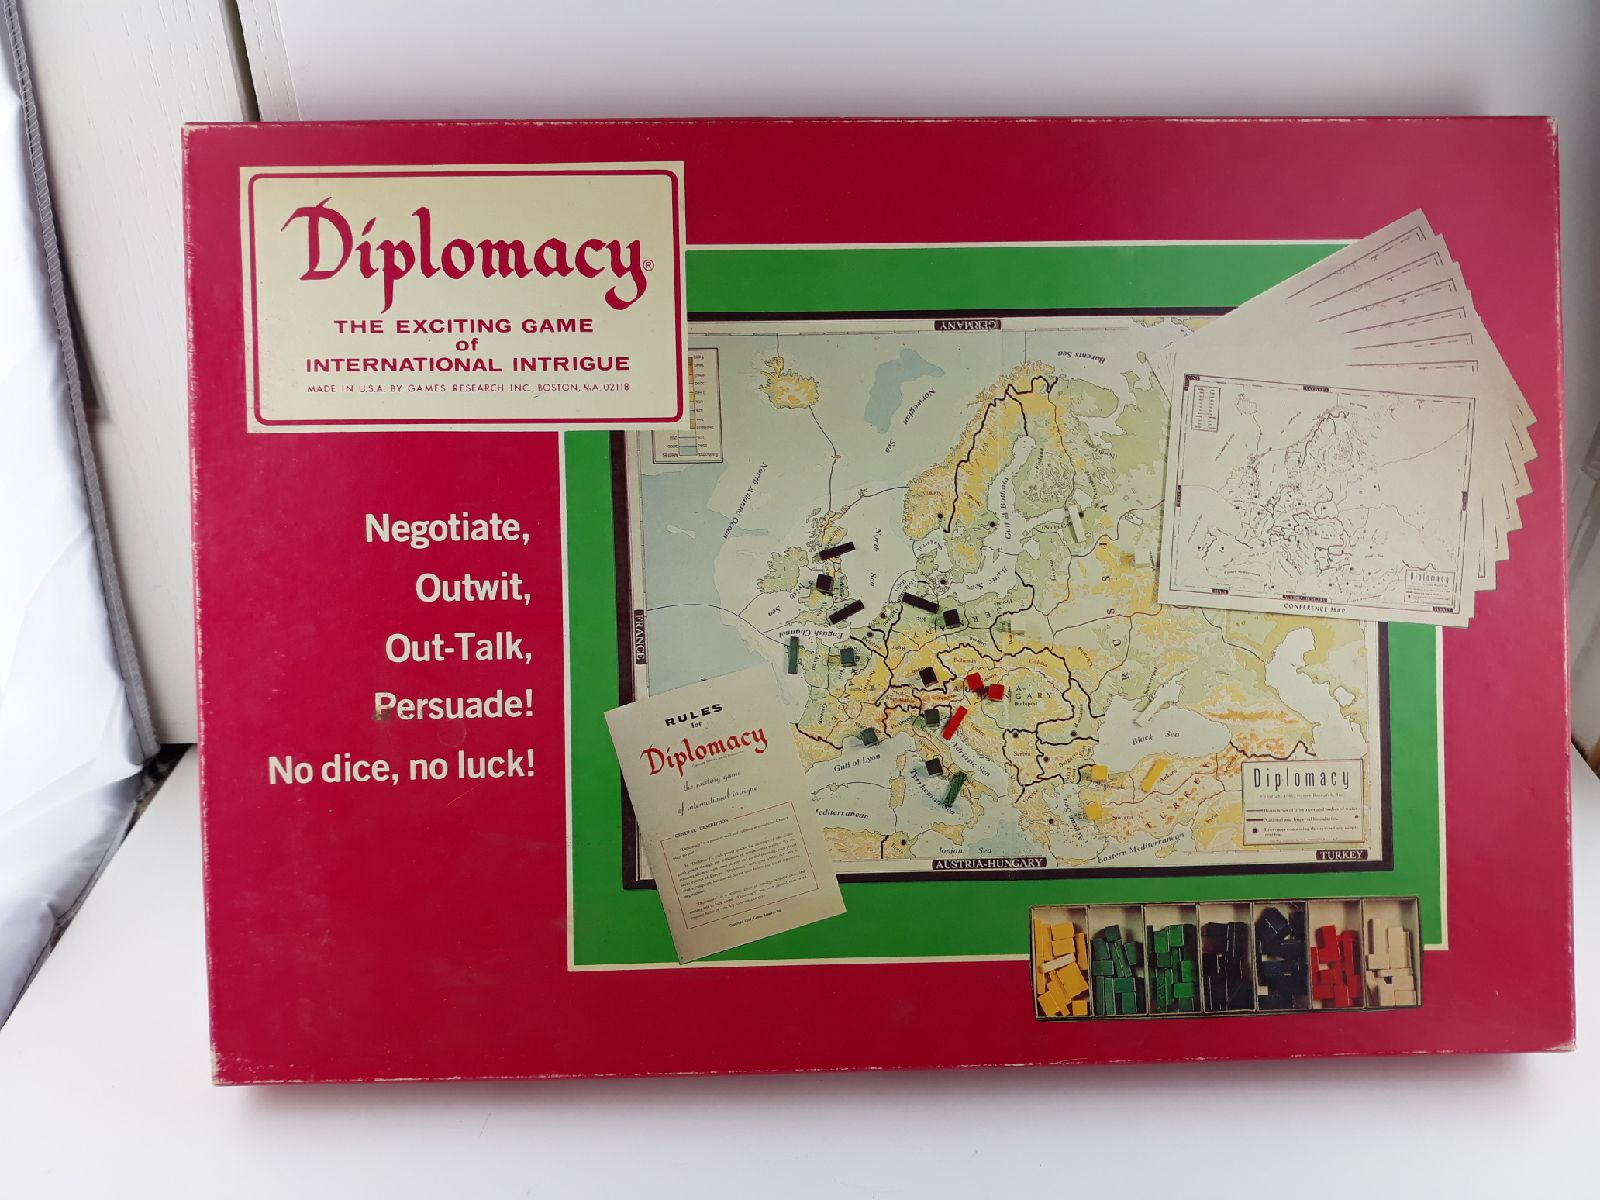 Diplomacy the exciting game of internati